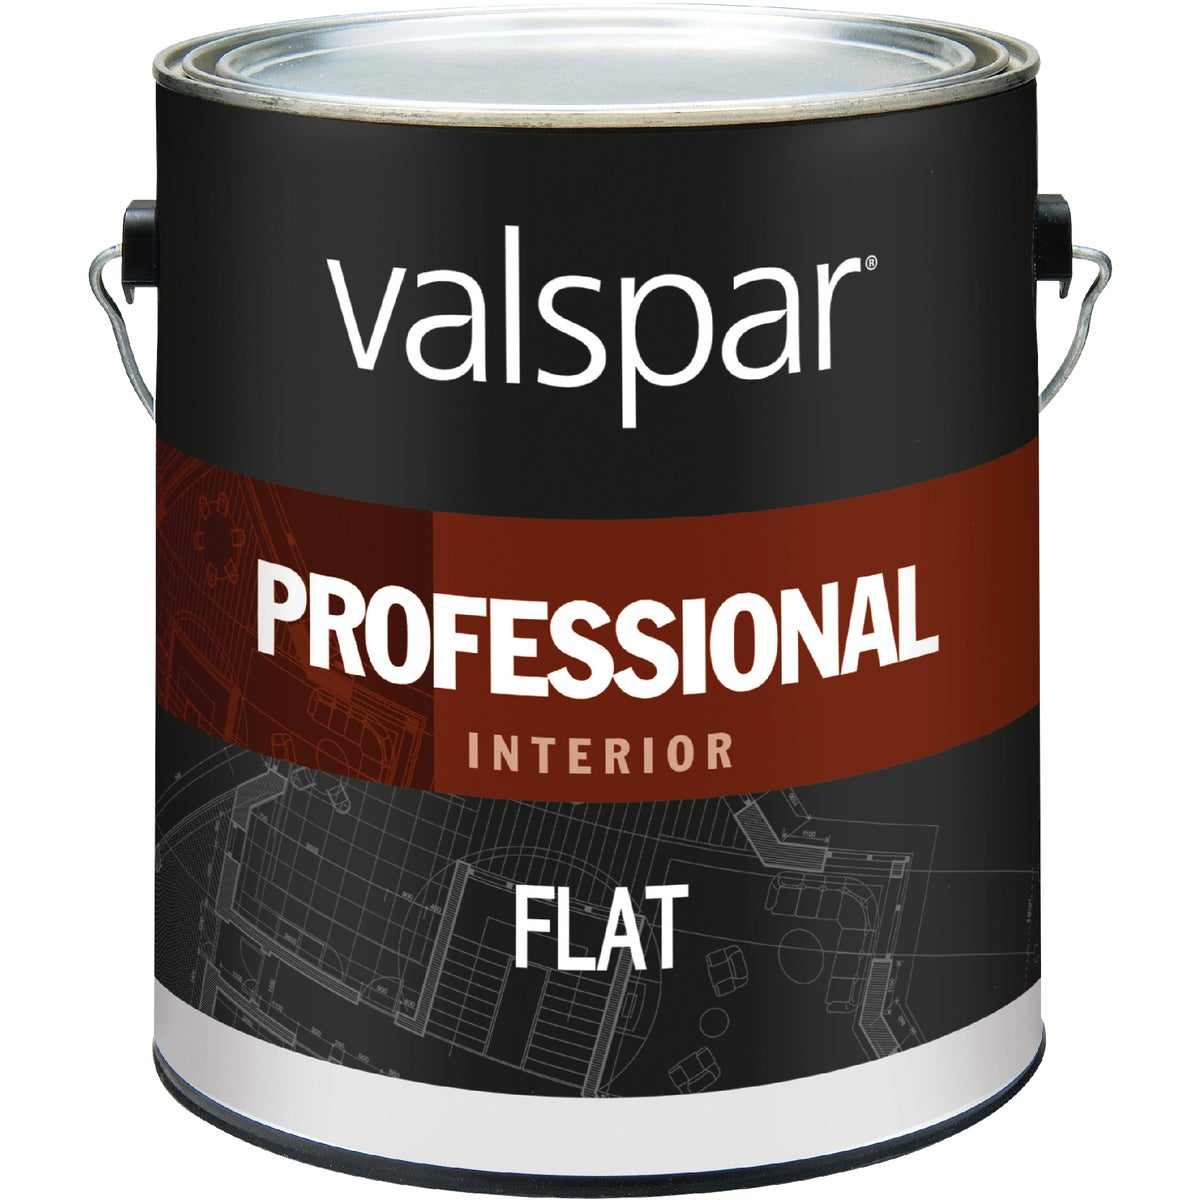 INT FLAT HIGH-HIDE PAINT - 045.0011600.007 by Valspar Corp